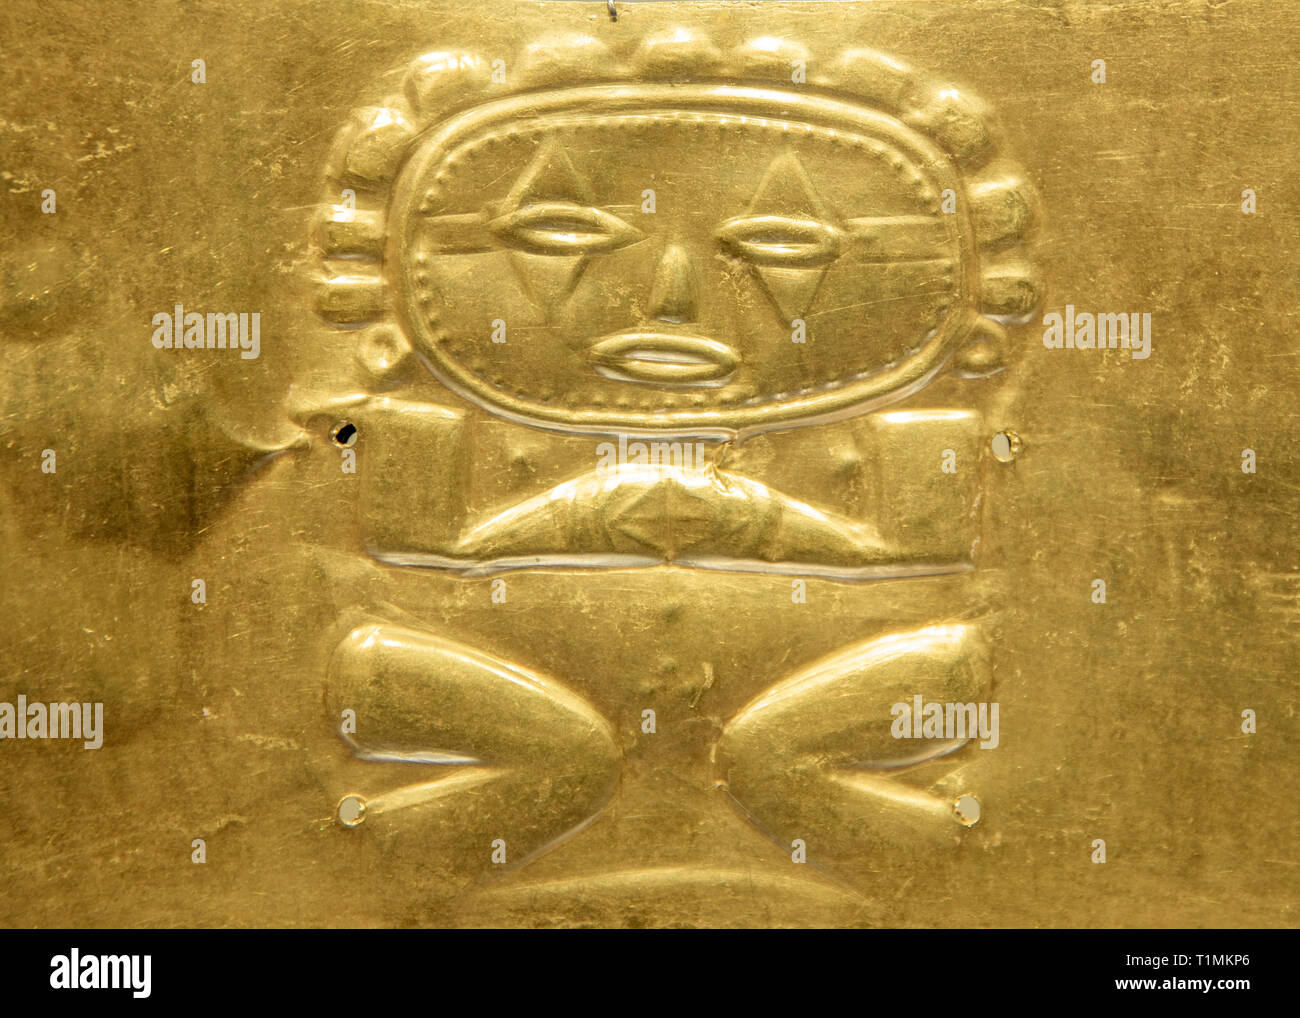 Ancient pre-Colombian artefact in the Gold Museum, Colombia, Bogota - Stock Image